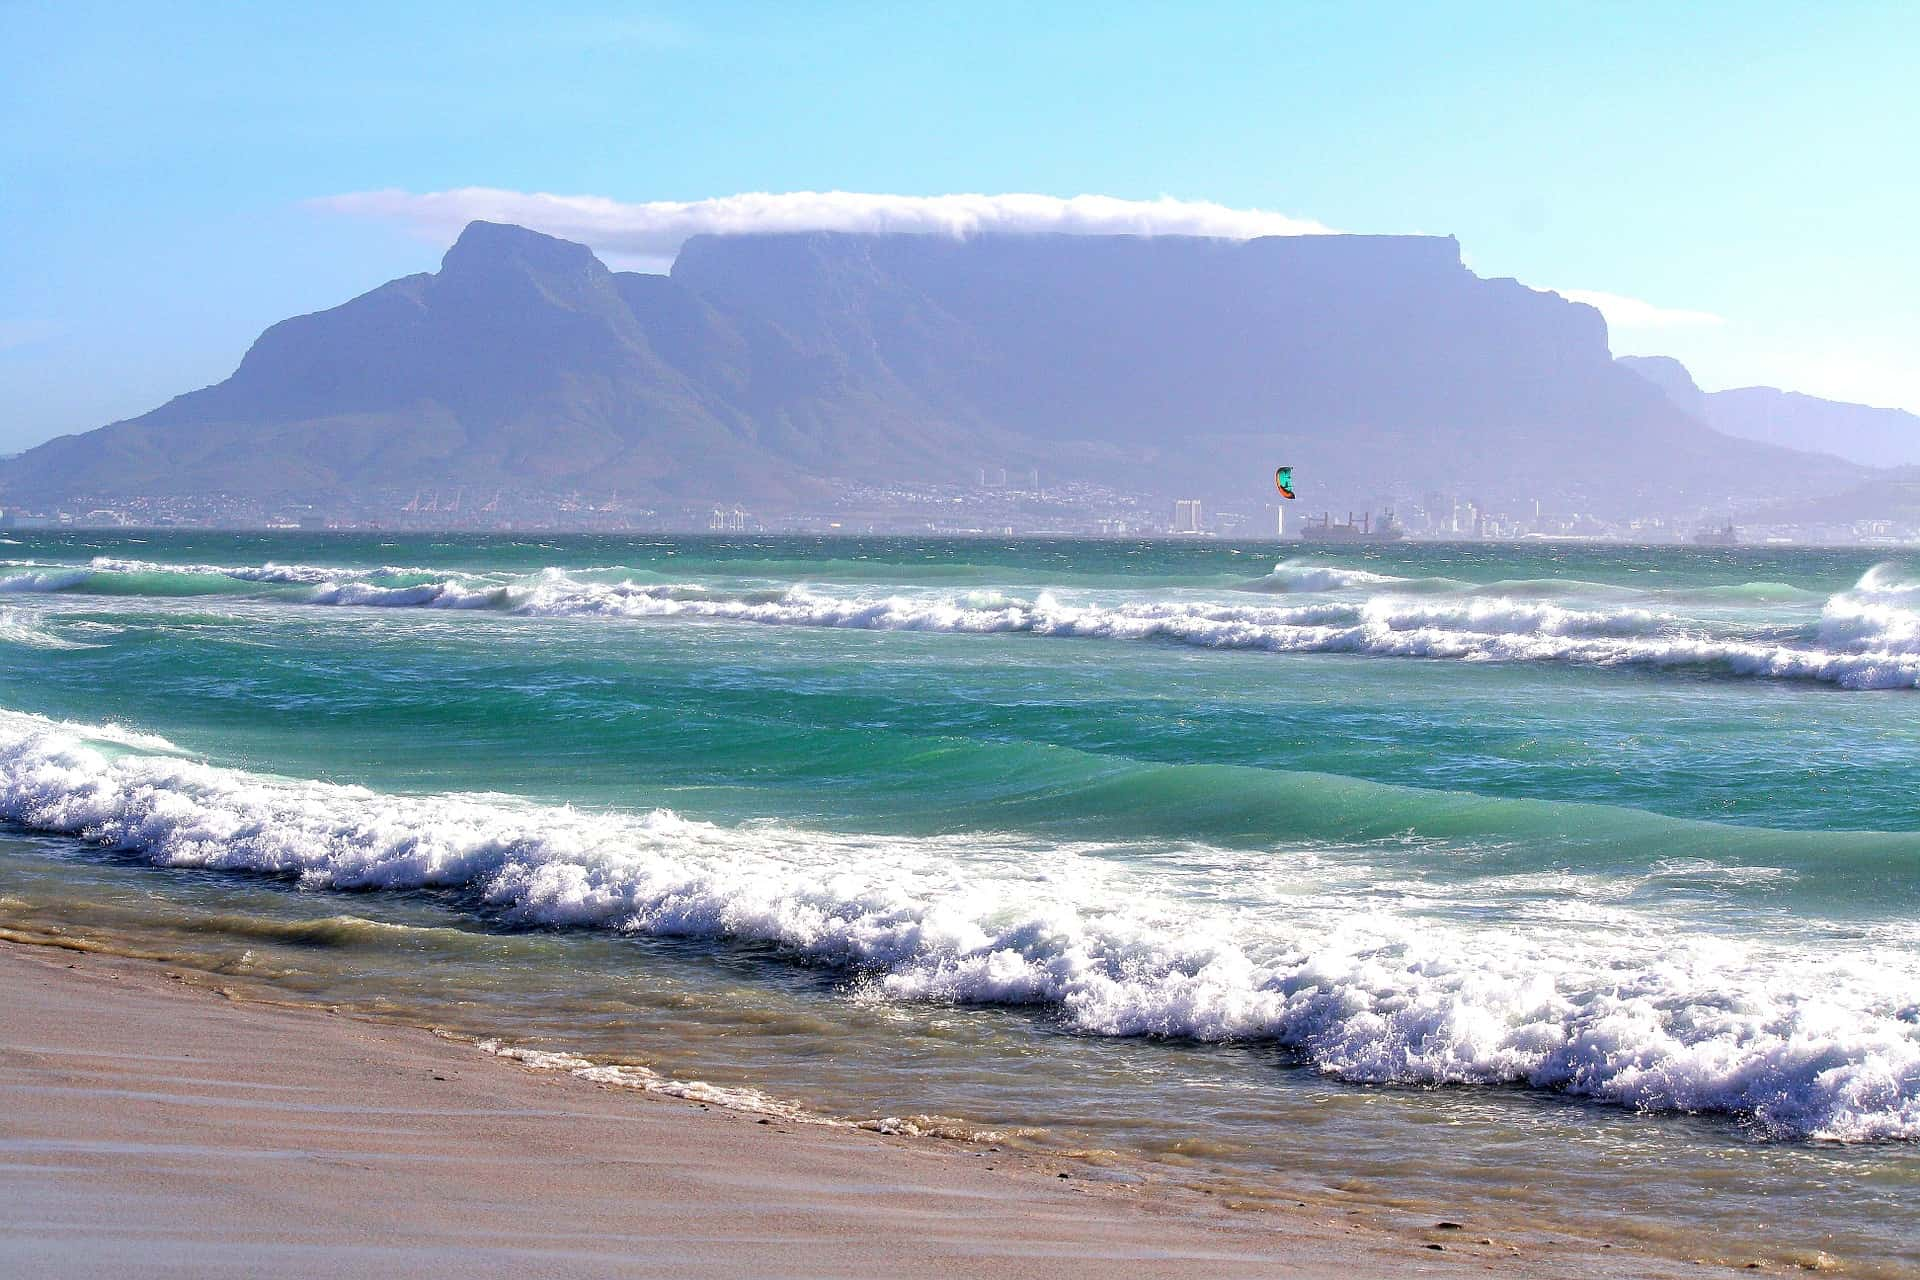 South Africa Trip: Best Tourist Attractions To Visit